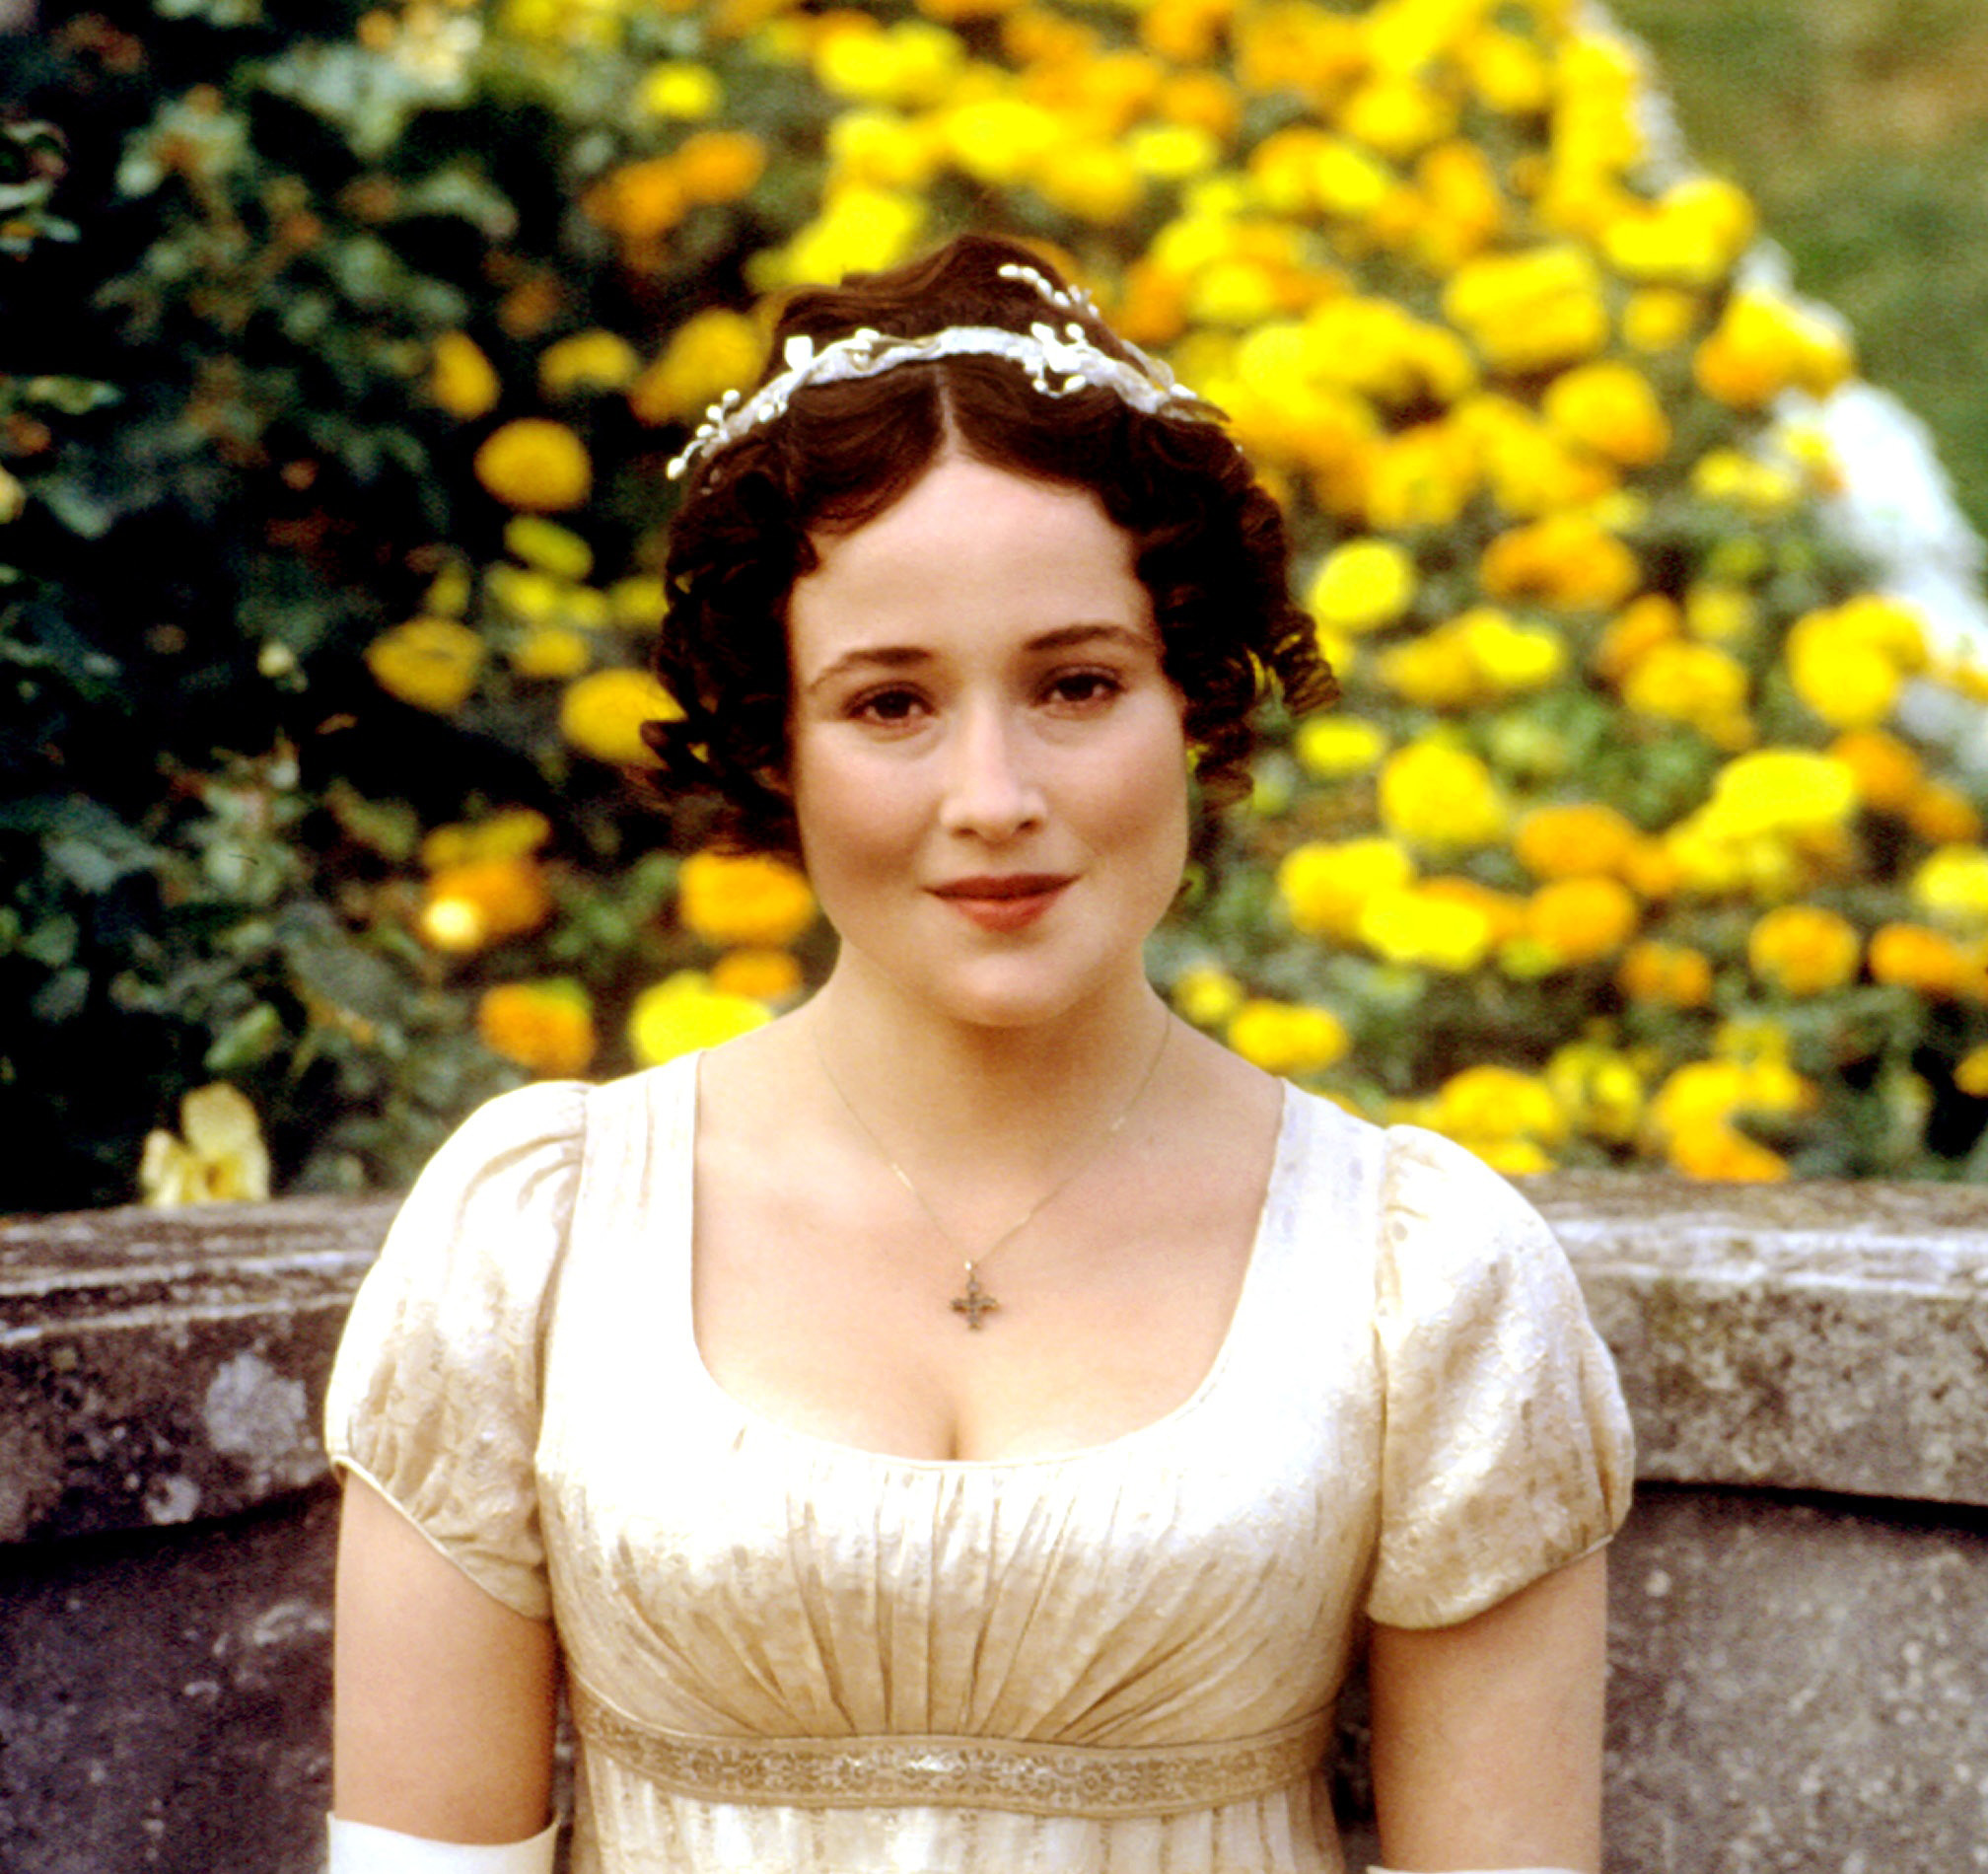 pride and prejudice elizabeth Jennifer ehle, actress: zero dark thirty 1995 pride and prejudice (tv mini-series) elizabeth bennet - episode #15 (1995) elizabeth bennet - episode #14 (1995) elizabeth bennet - episode #13 (1995) elizabeth bennet - episode #12 (1995) elizabeth bennet.